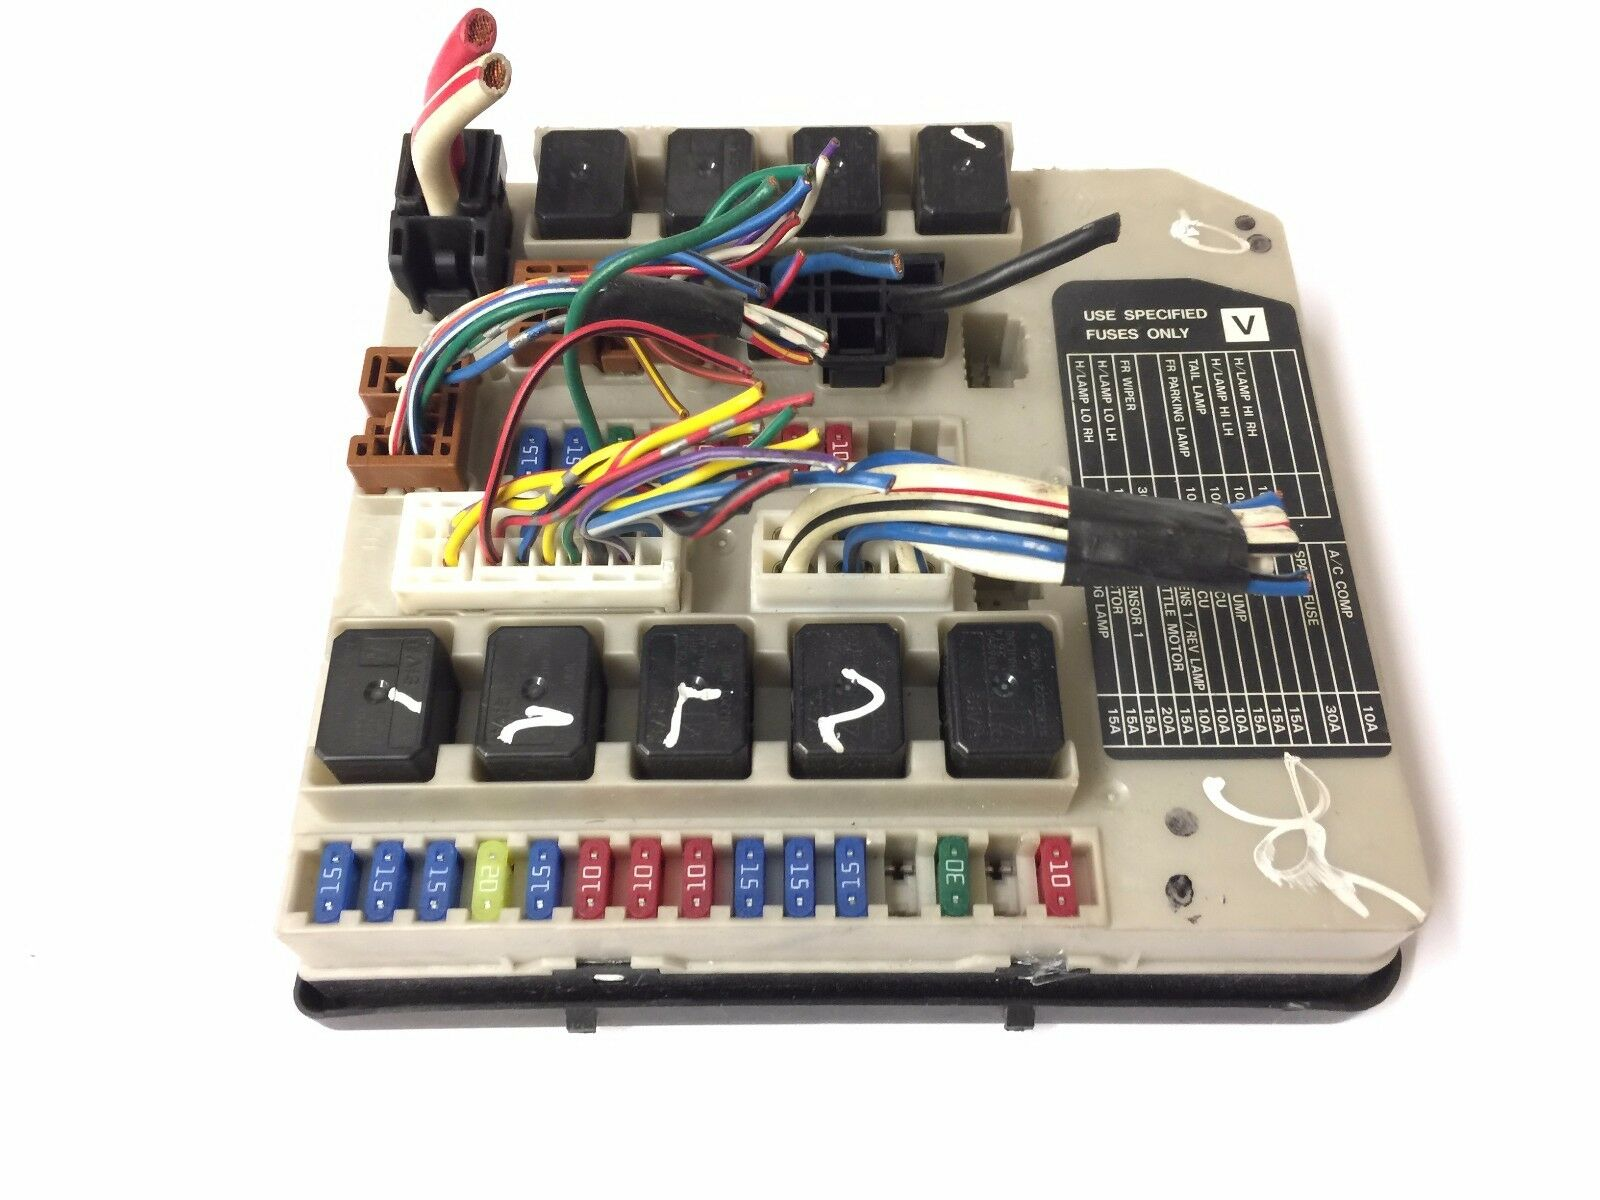 2007-2008 -2011 Nissan Sentra/Versa Body Control Fusebox PP-T30- 1 of 2FREE  Shipping See More